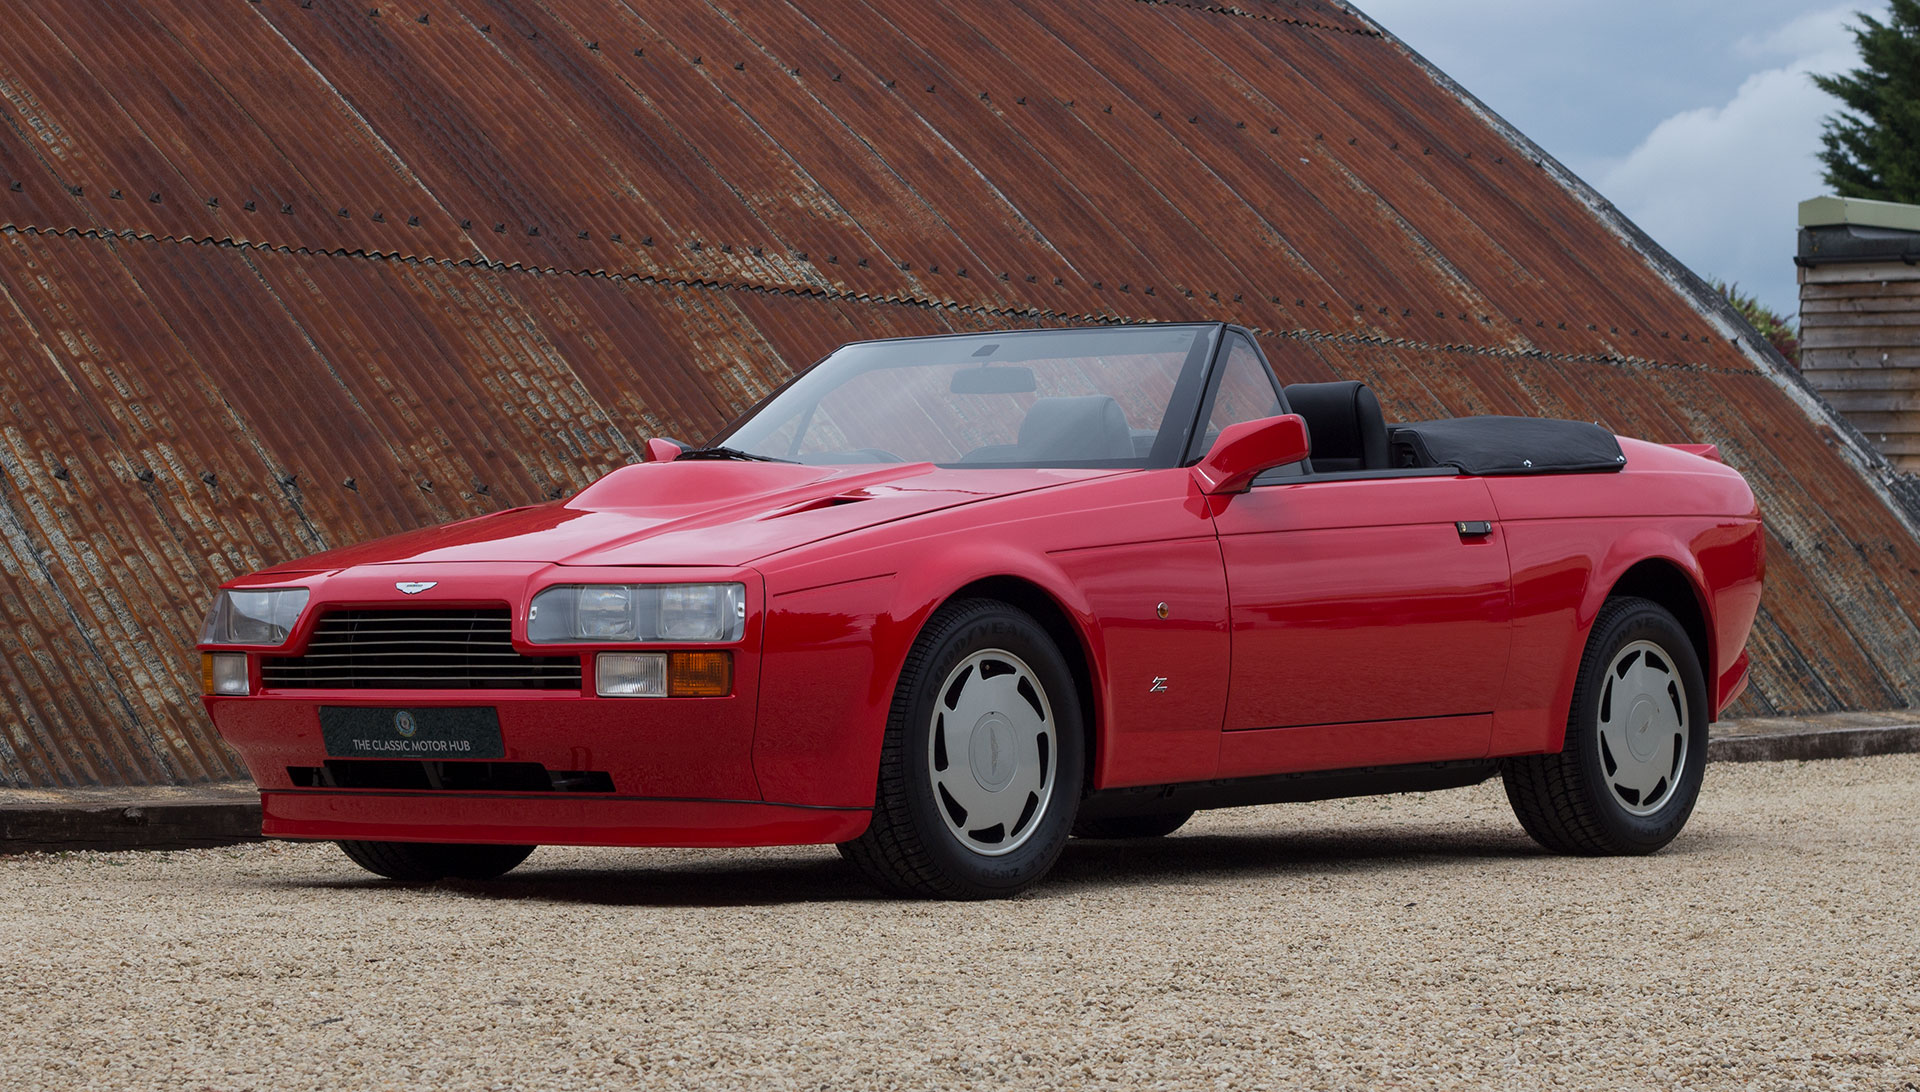 1989 Aston Martin V8 Vantage Volante Zagato for sale at The Classic Motor Hub